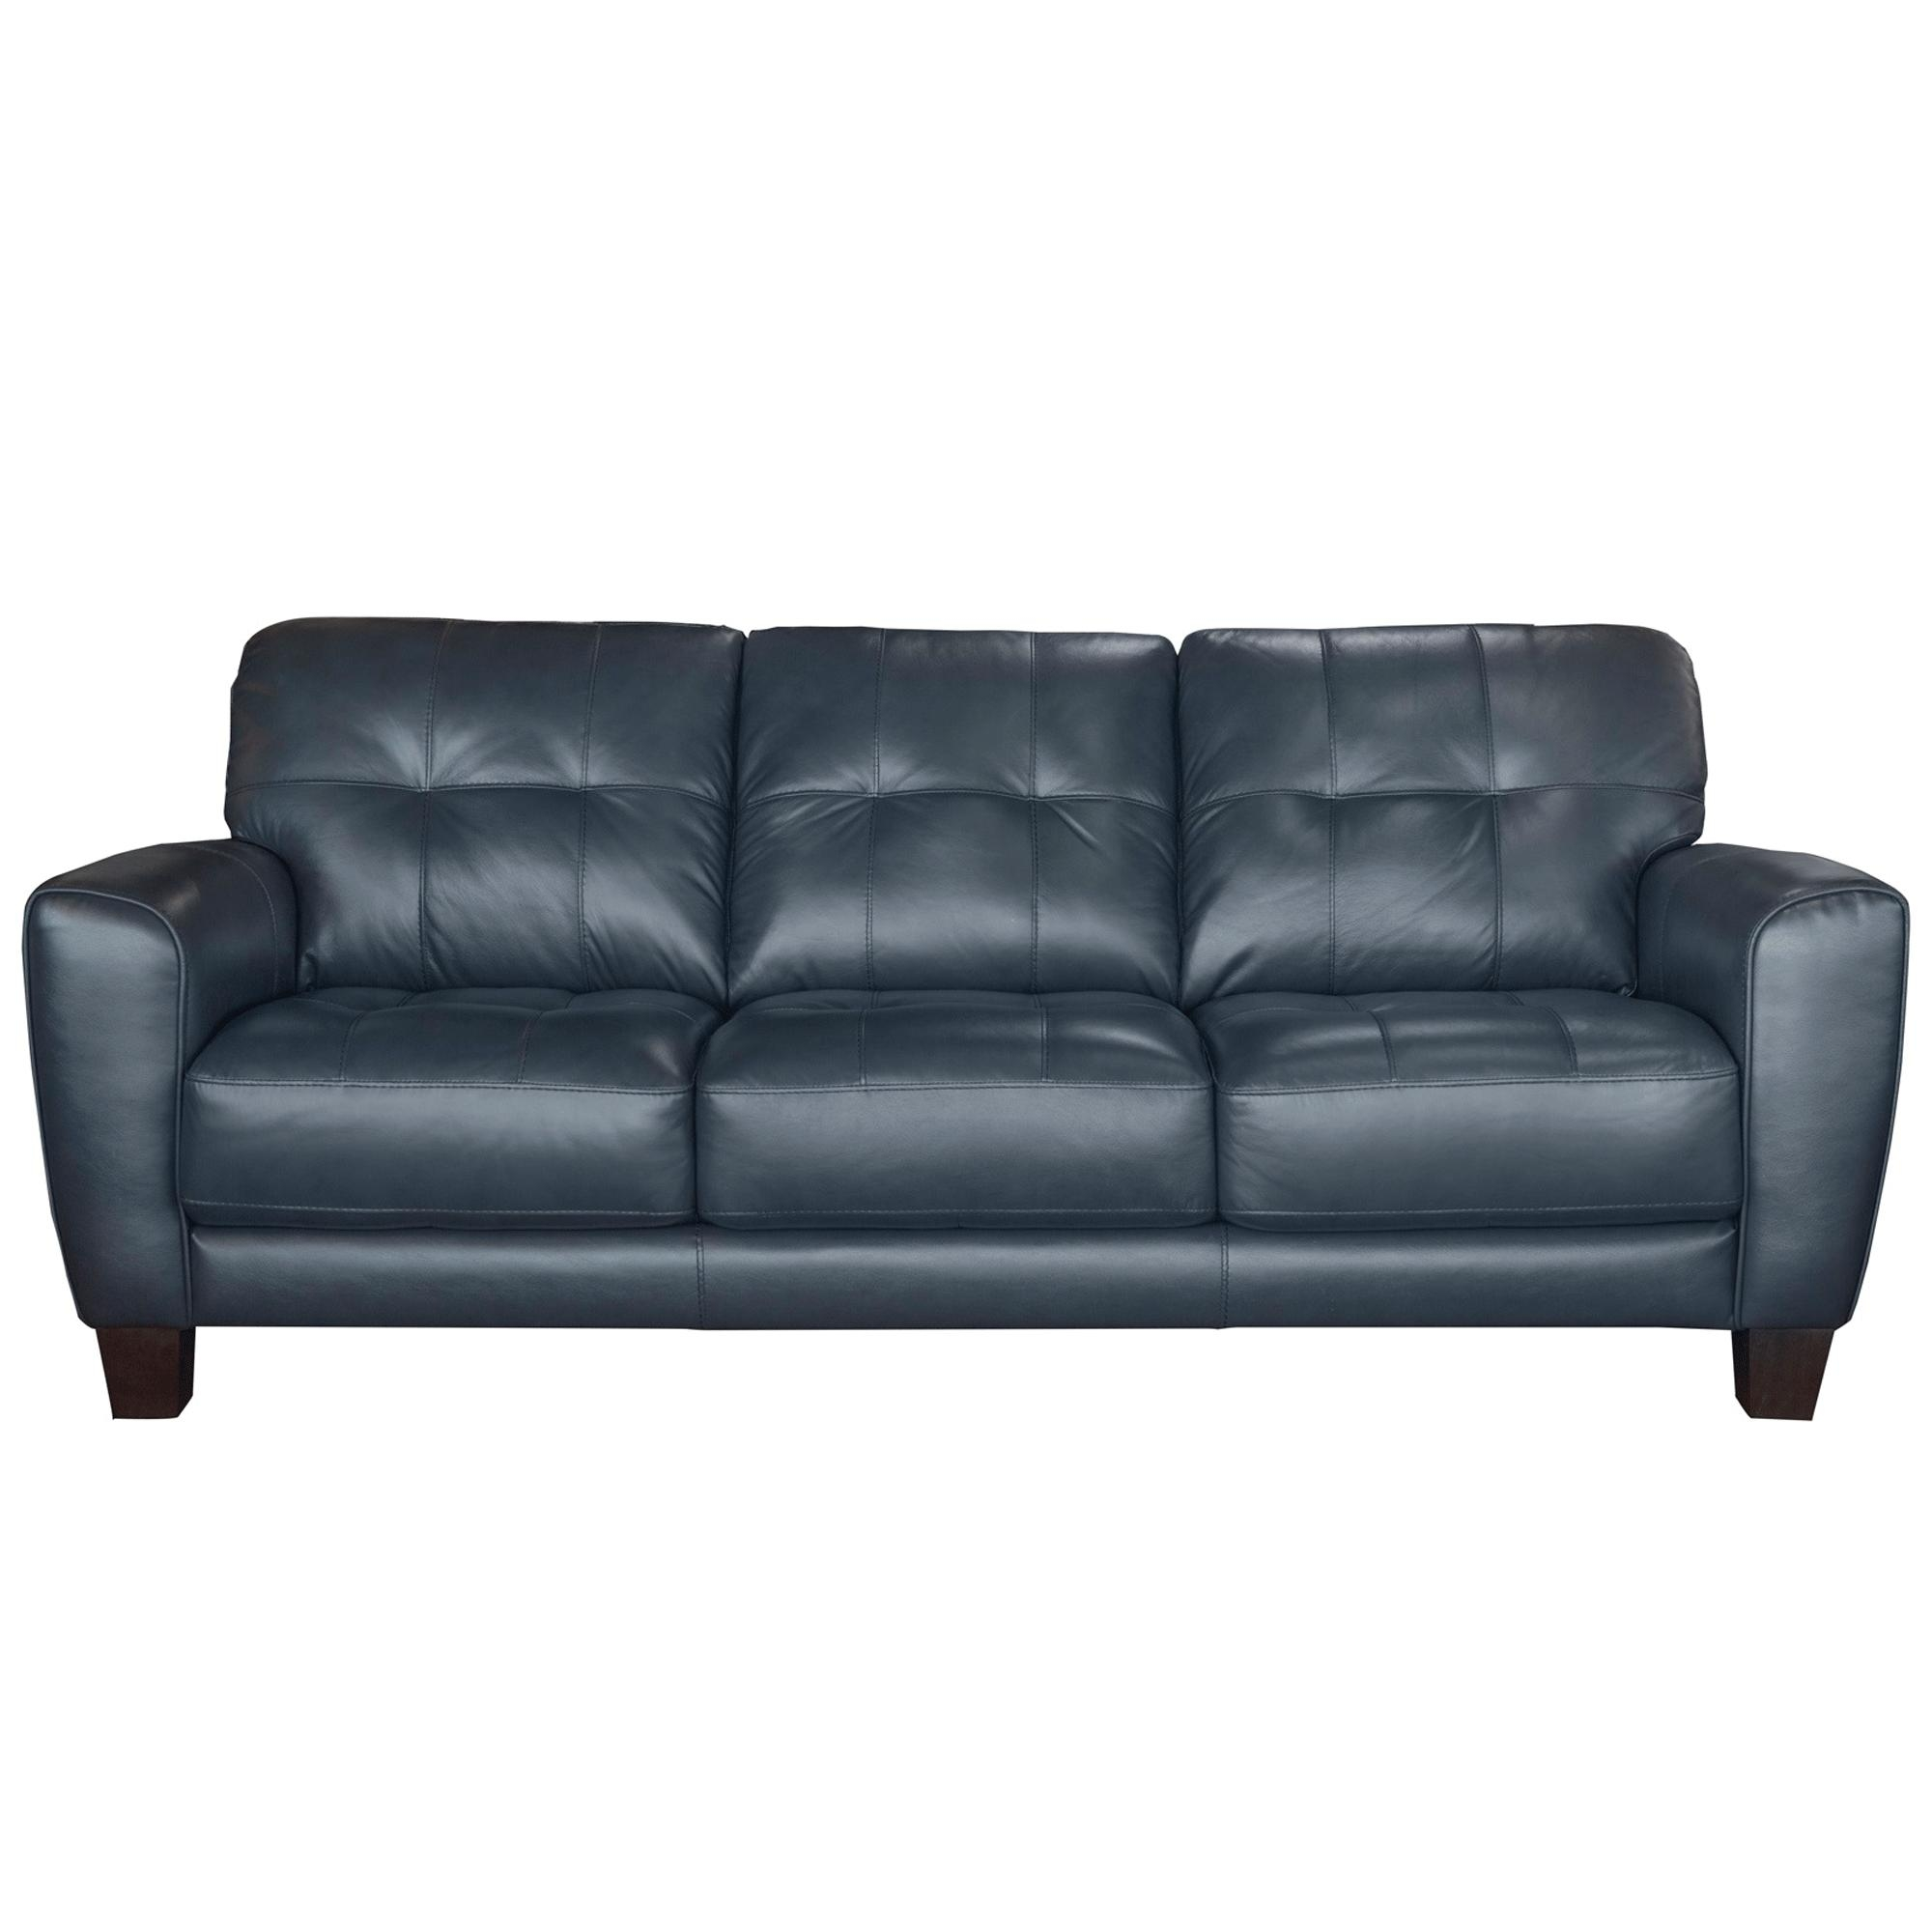 bernie and phyls furniture sofas sofa with reversible chaise 20 collection of grey chairs ideas